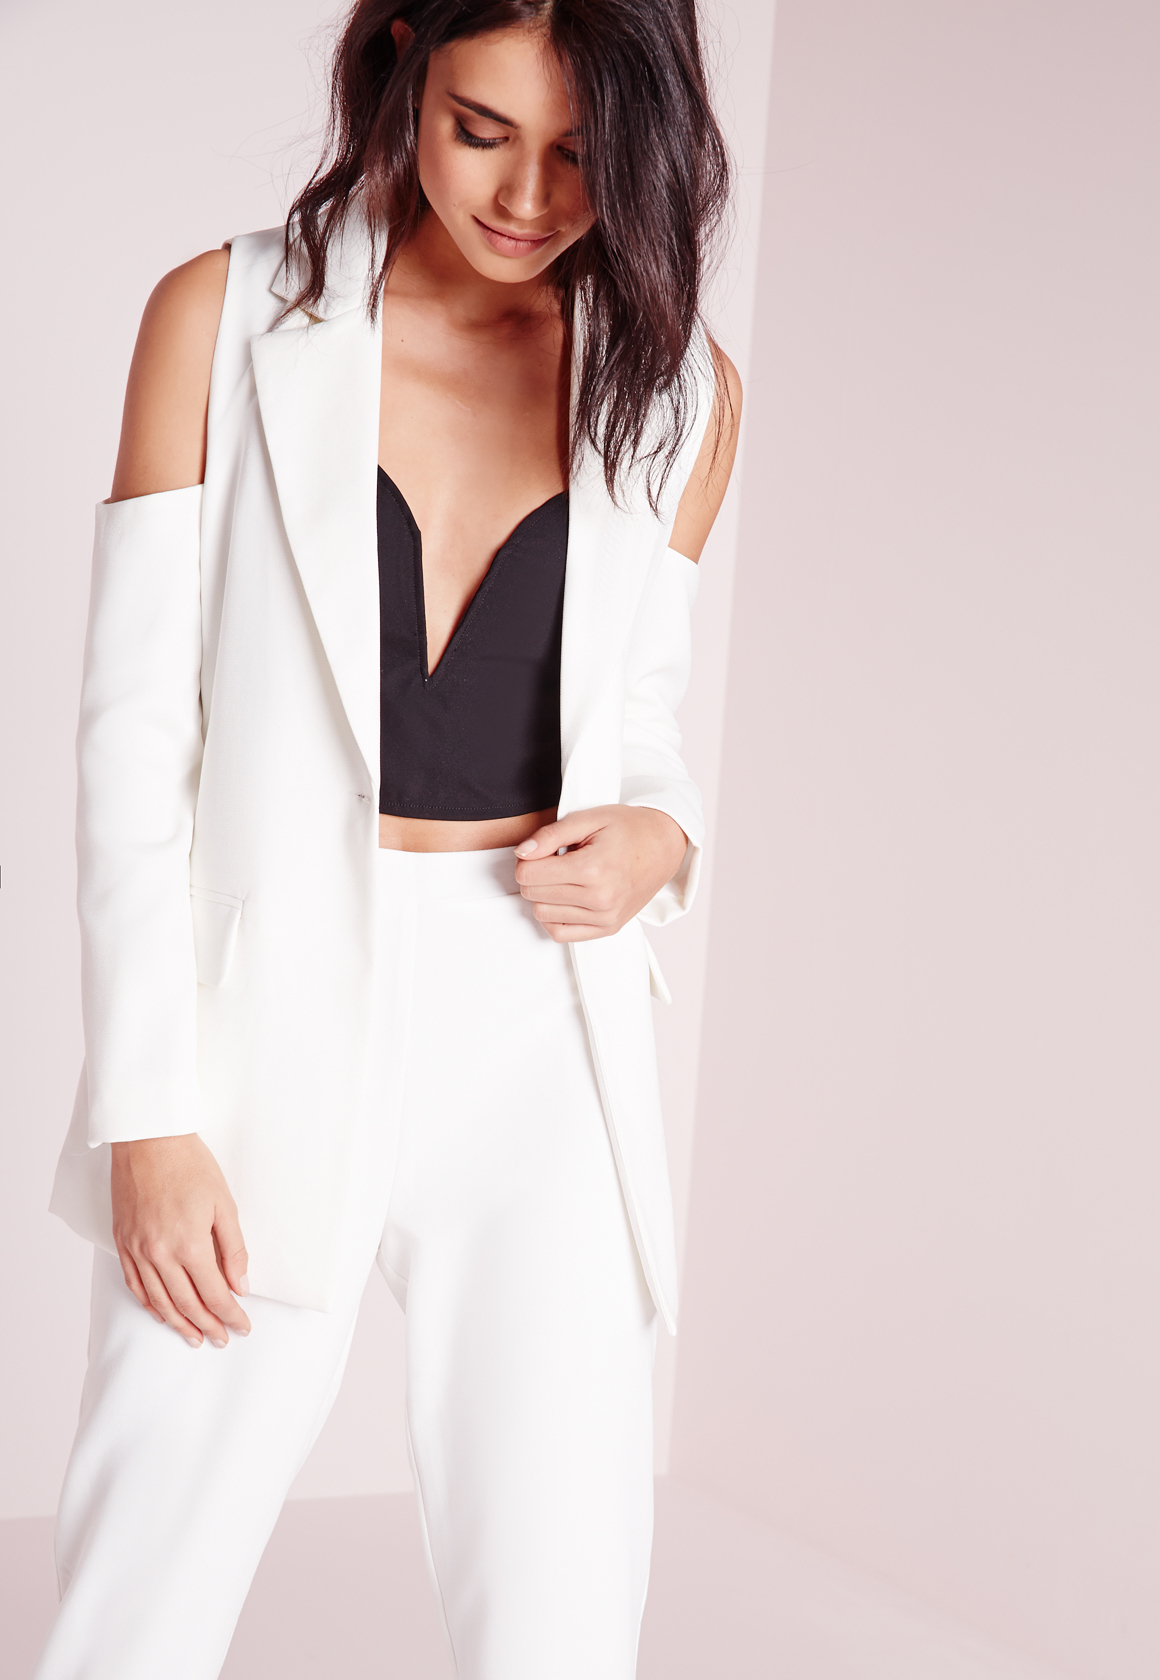 ed3be588649c6c Lyst - Missguided Cold Shoulder Tailored Blazer White in White